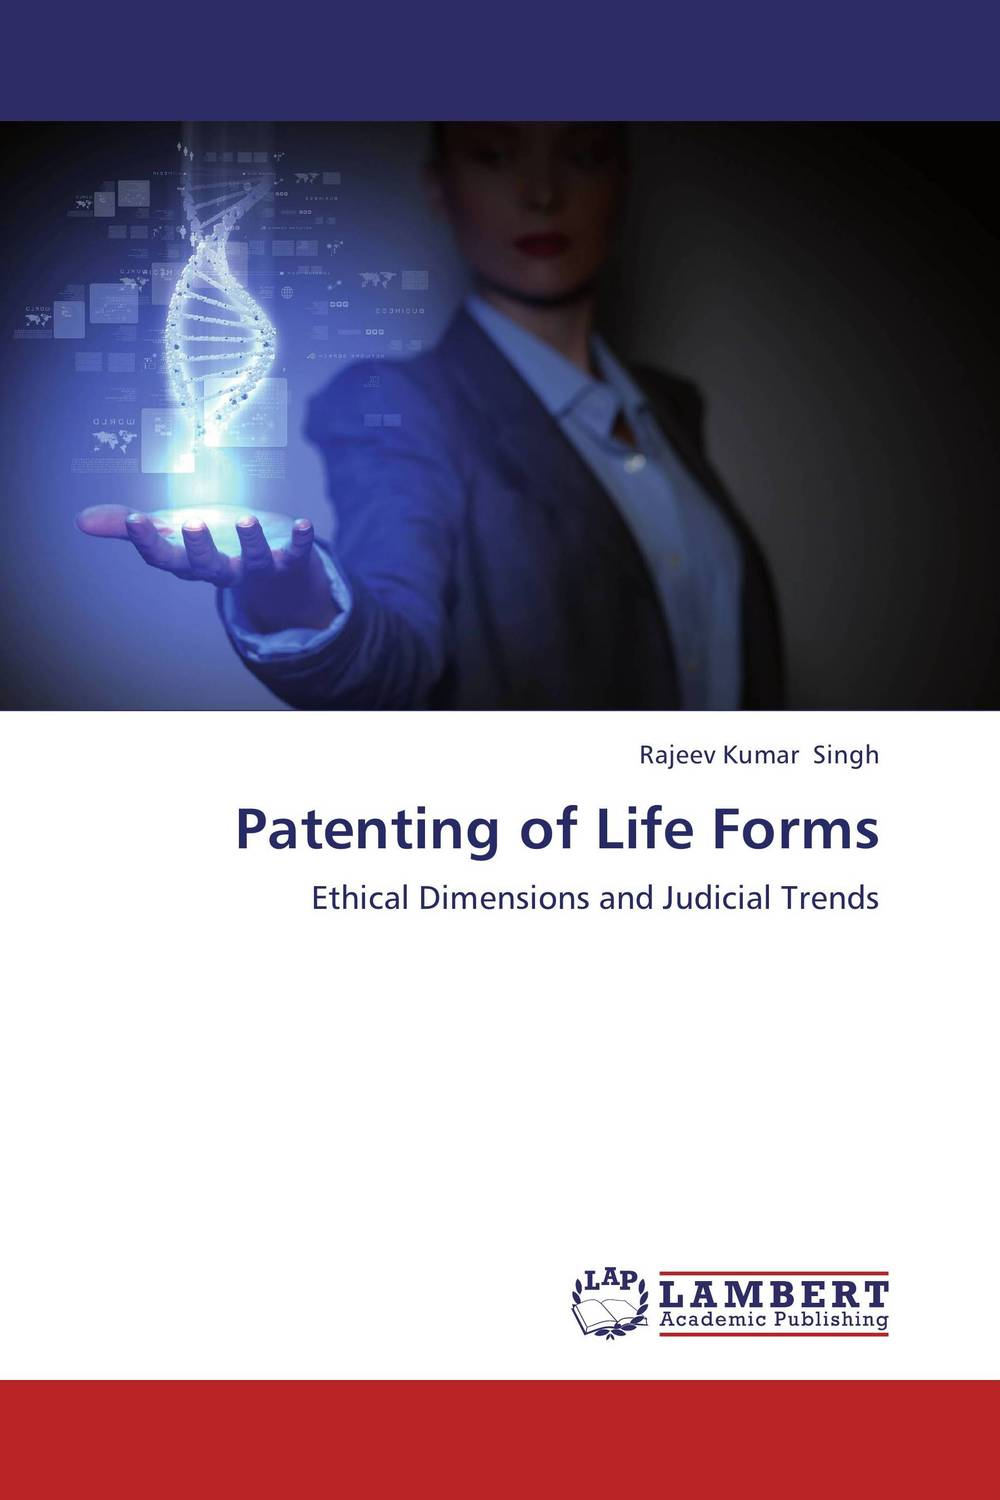 Patenting of Life Forms the life of forms in art